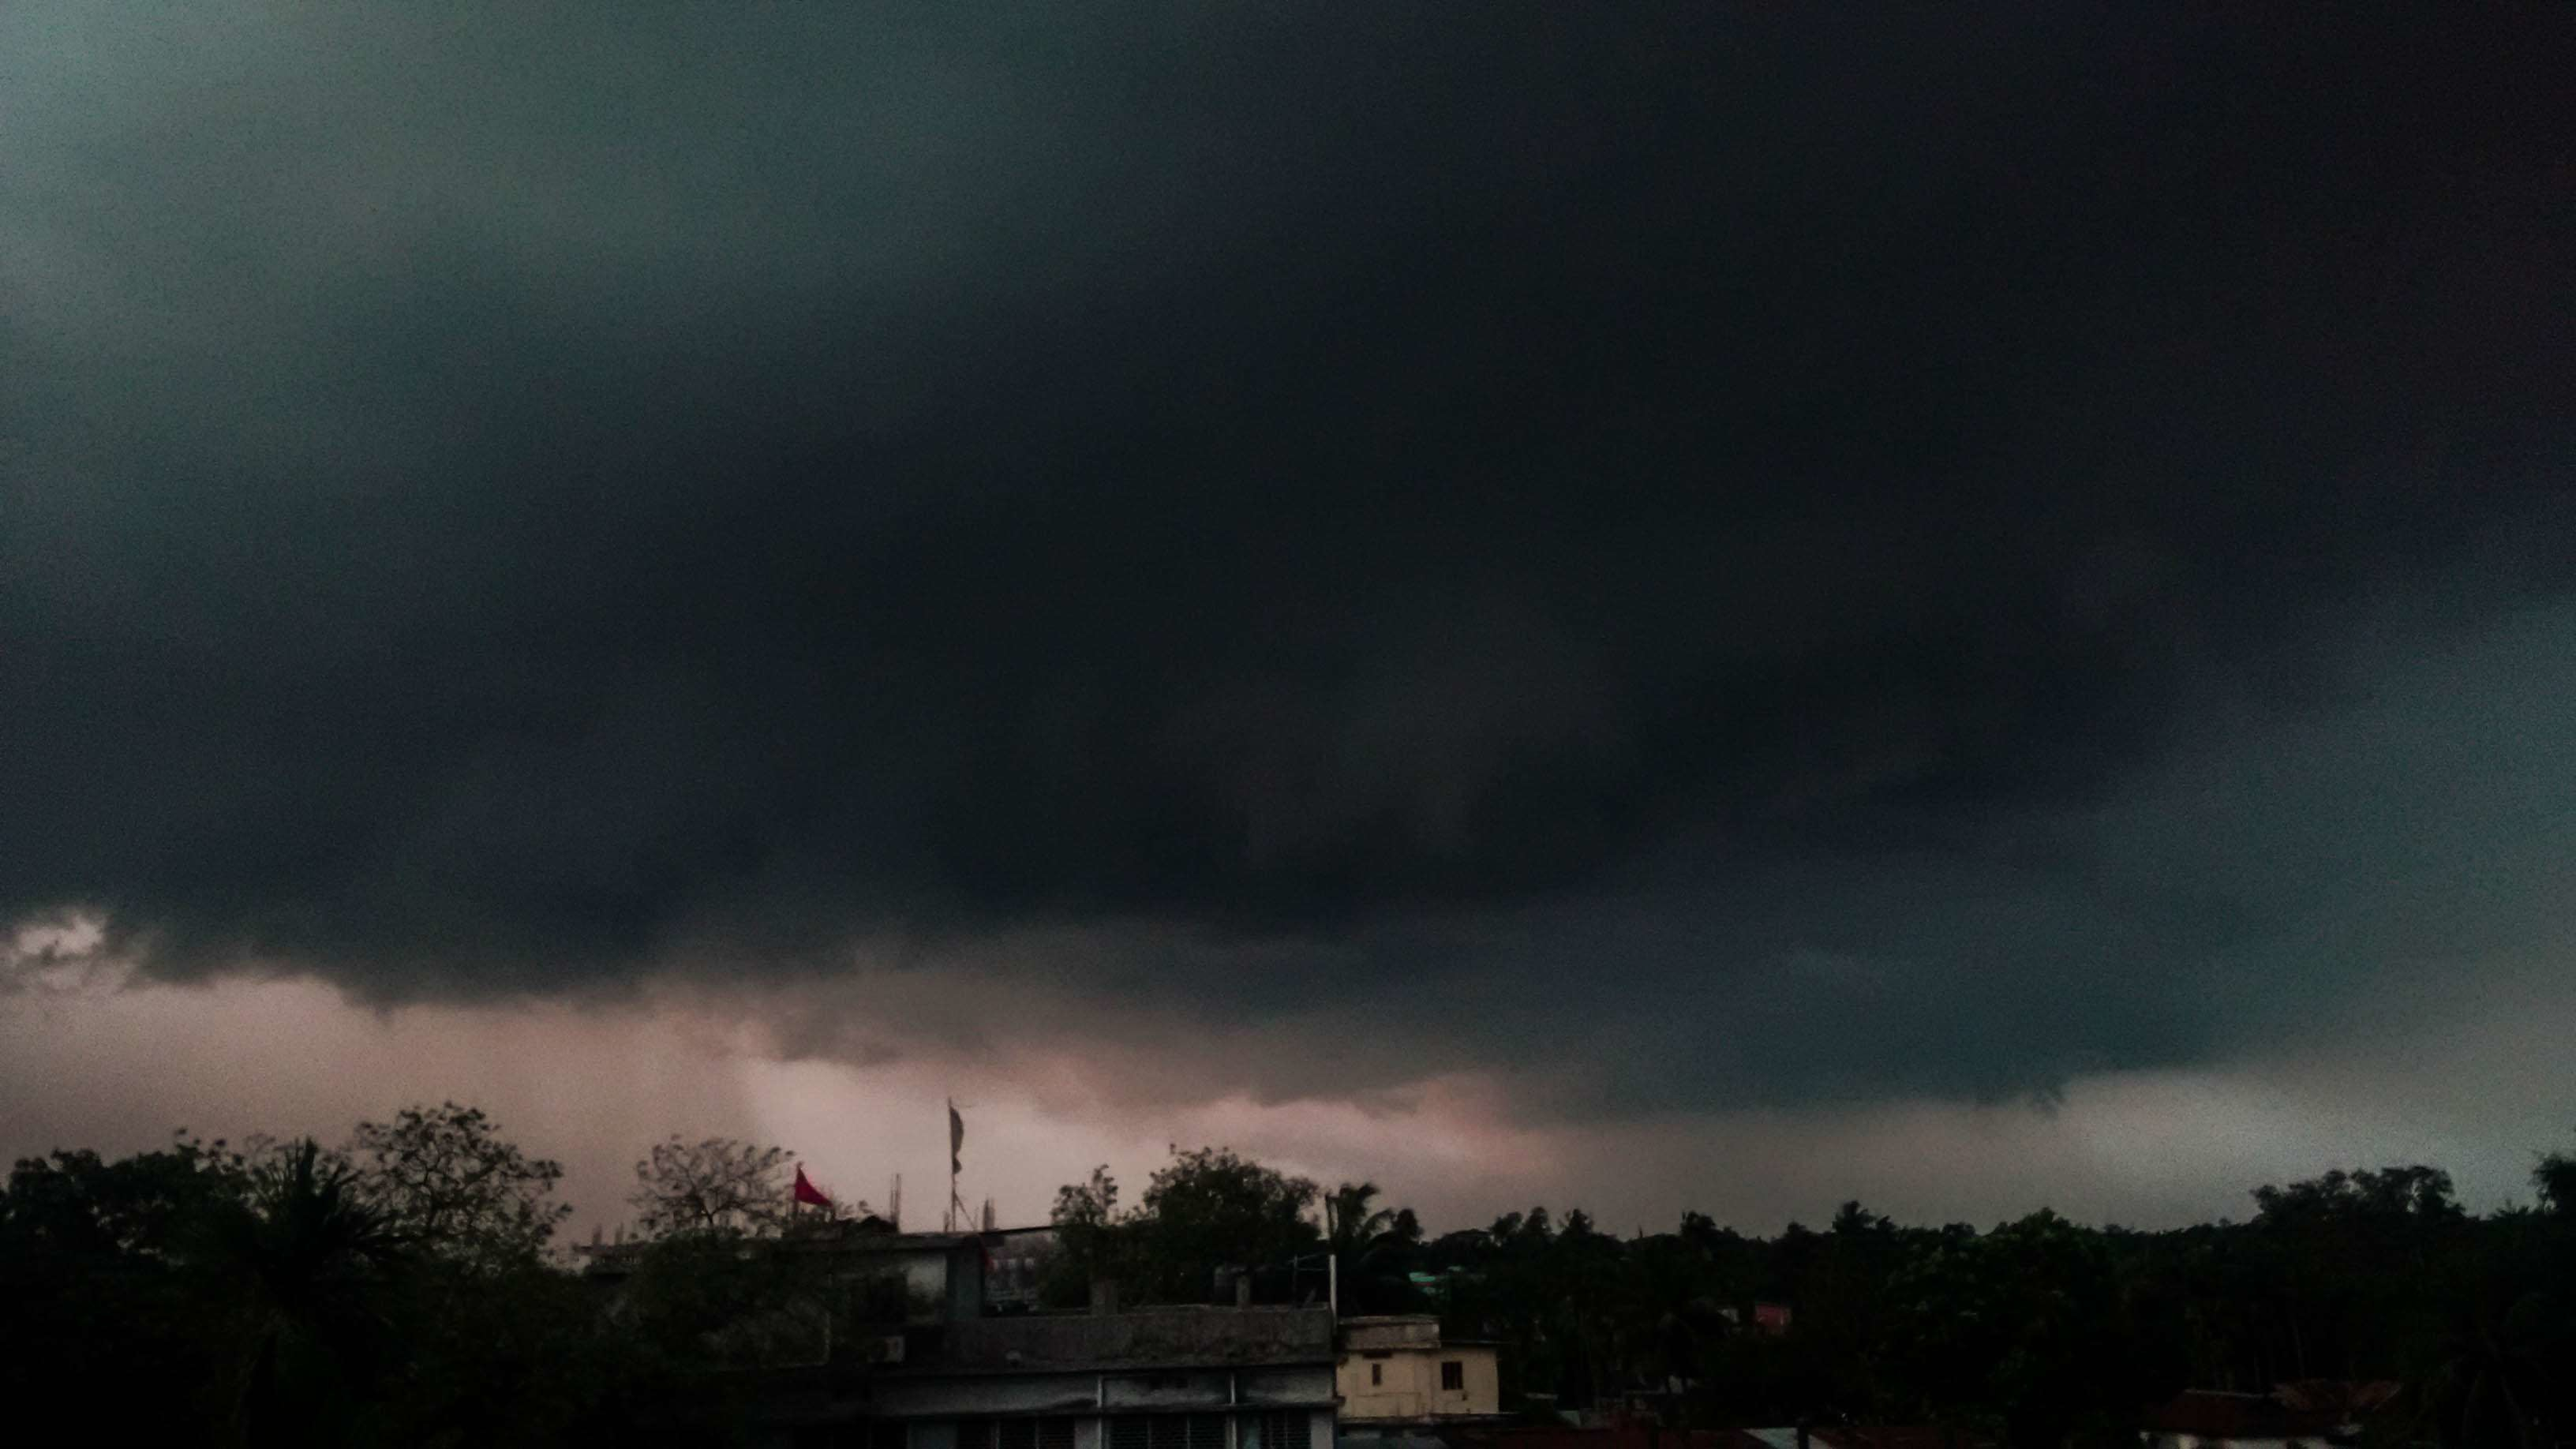 Res: 3264x1836, dark clouds, rain, stormy, thunder, thunderstorm wallpaper and background